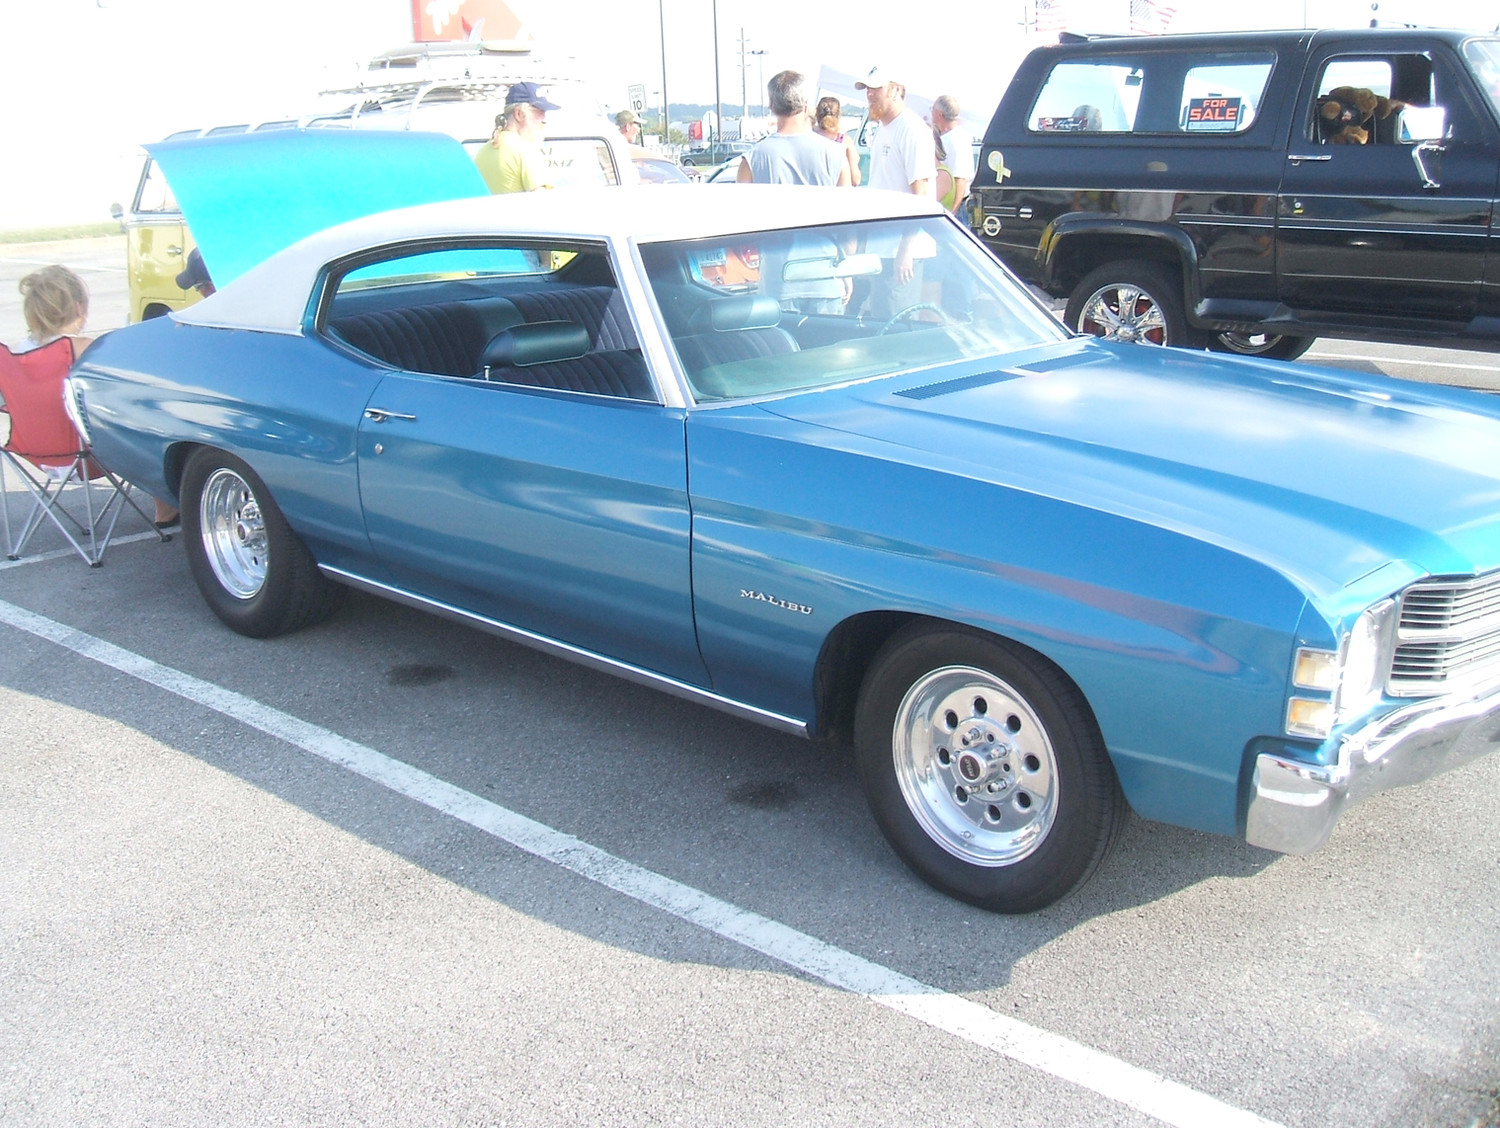 THE FINAL Disabled American Veterans car show for 2017 will be Saturday, Oct. 14, at Bradley Square Mall from 9 a.m. to 5 p.m.The local Disabled American Veterans monthly car show will be held this Saturday, from 5 to 9 p.m. at the mall. Vintage cars will be on display and there is no charge to view the cars, or to drive them to be displayed at the show. However, if you wish your vehicle to be included in judging, there is a $15 fee. There will also be hot dogs, soft drinks and homemade ice cream available at the event, with proceeds benefiting local veterans' assistance.